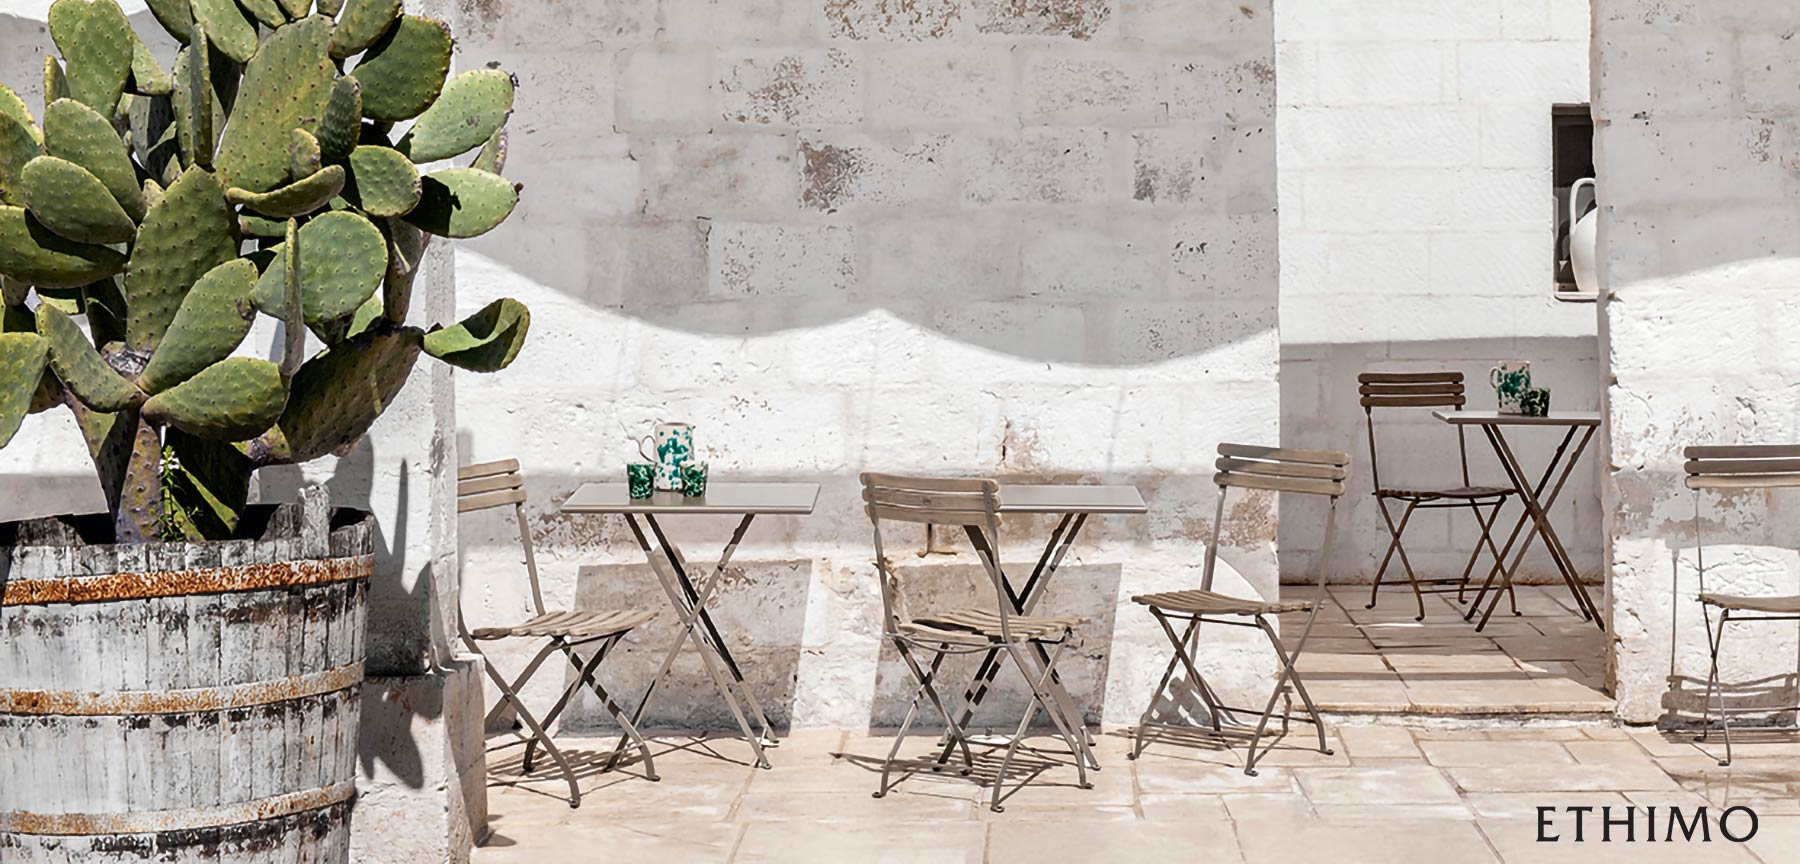 Ethimo Flower Folding Metal Bistro Dining Tables on outdoor patio